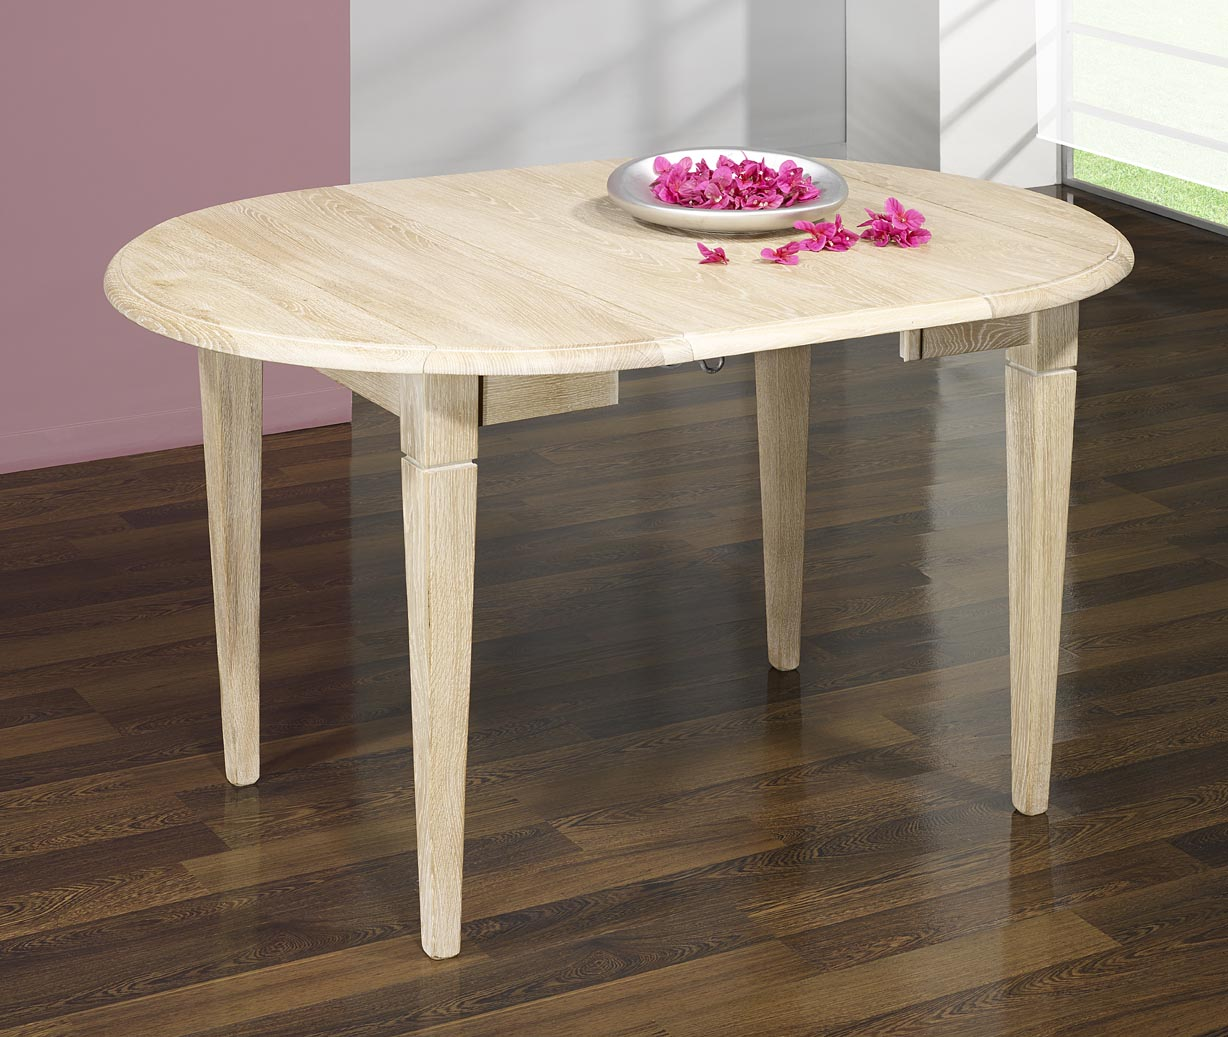 Table Ronde 80 Cm Conforama Table Ronde à Volets Diamètre 80 Cm En Chêne Massif De